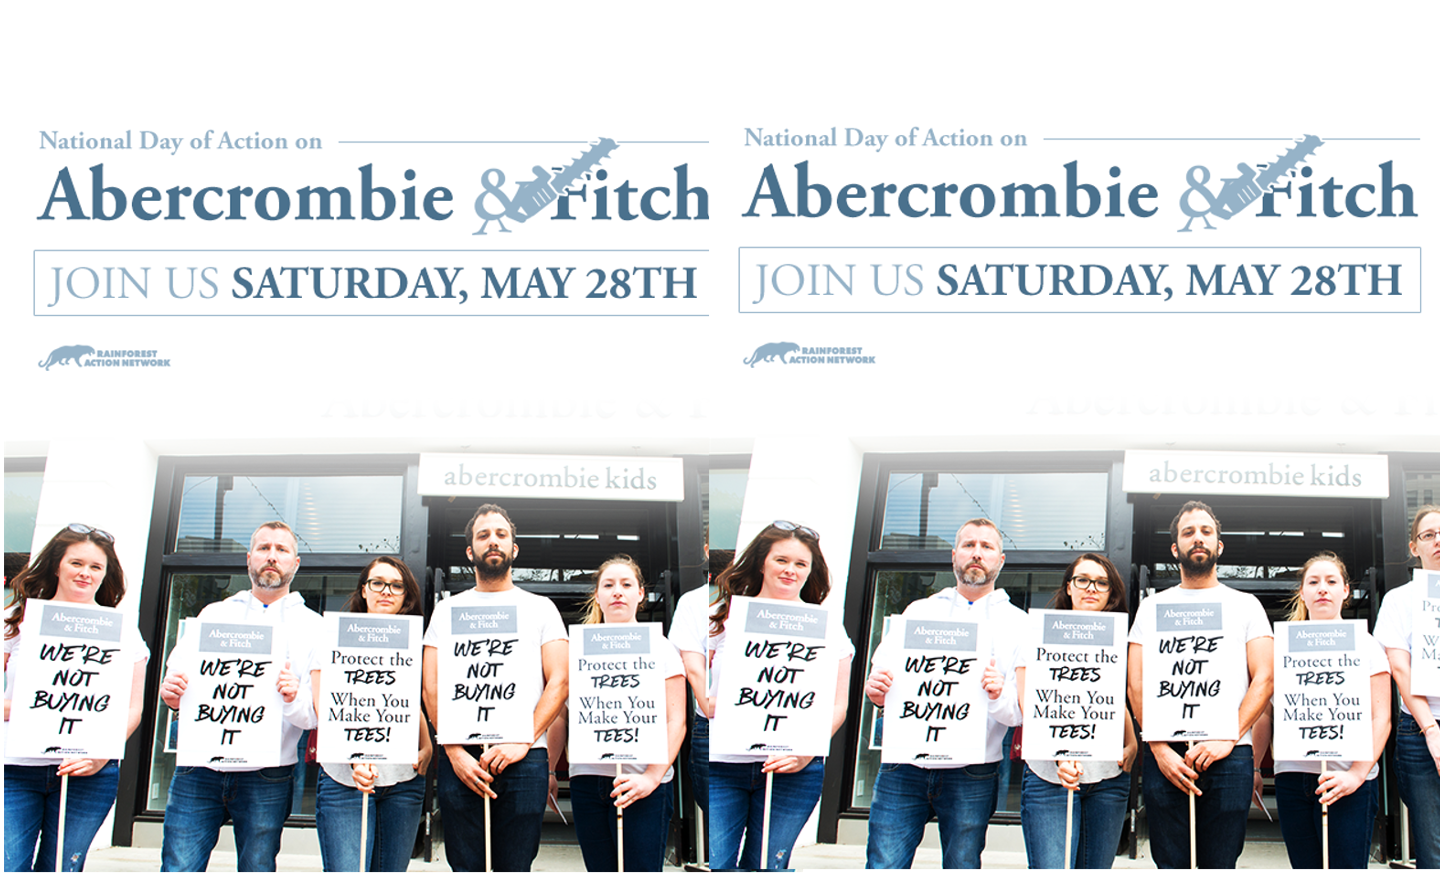 National Day of Action on Abercrombie & Fitch -- Sat., May 28th